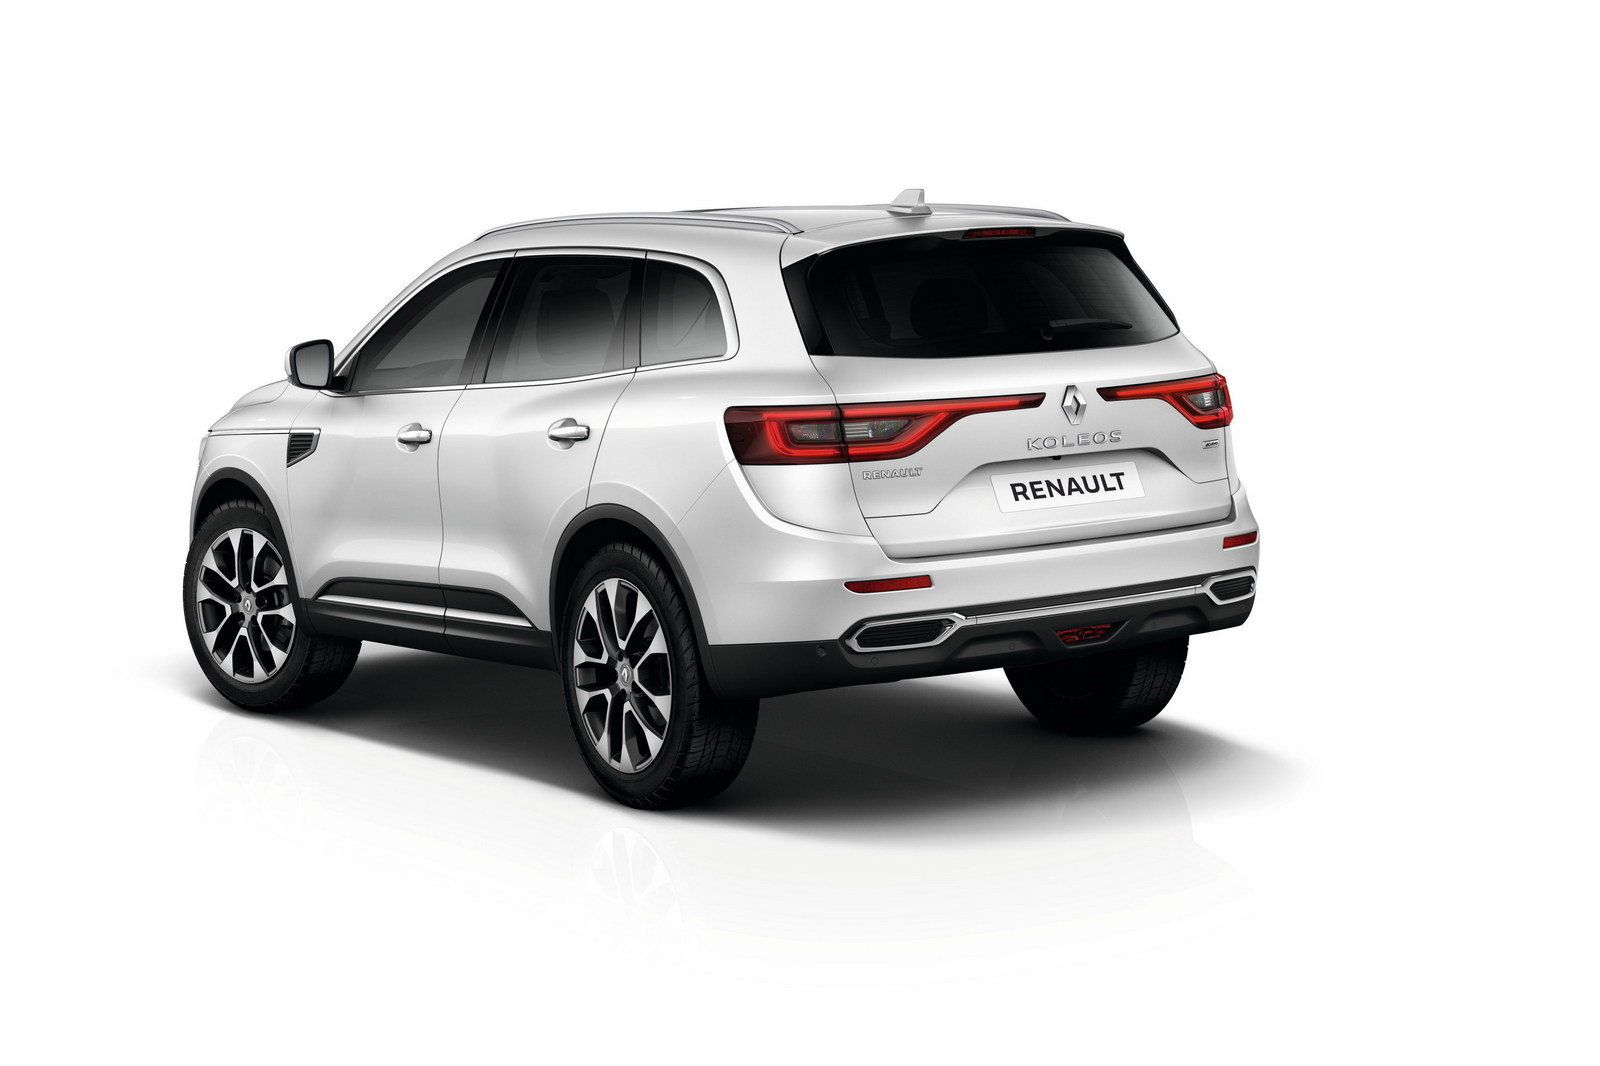 2017 renault koleos picture 674101 car review top speed. Black Bedroom Furniture Sets. Home Design Ideas